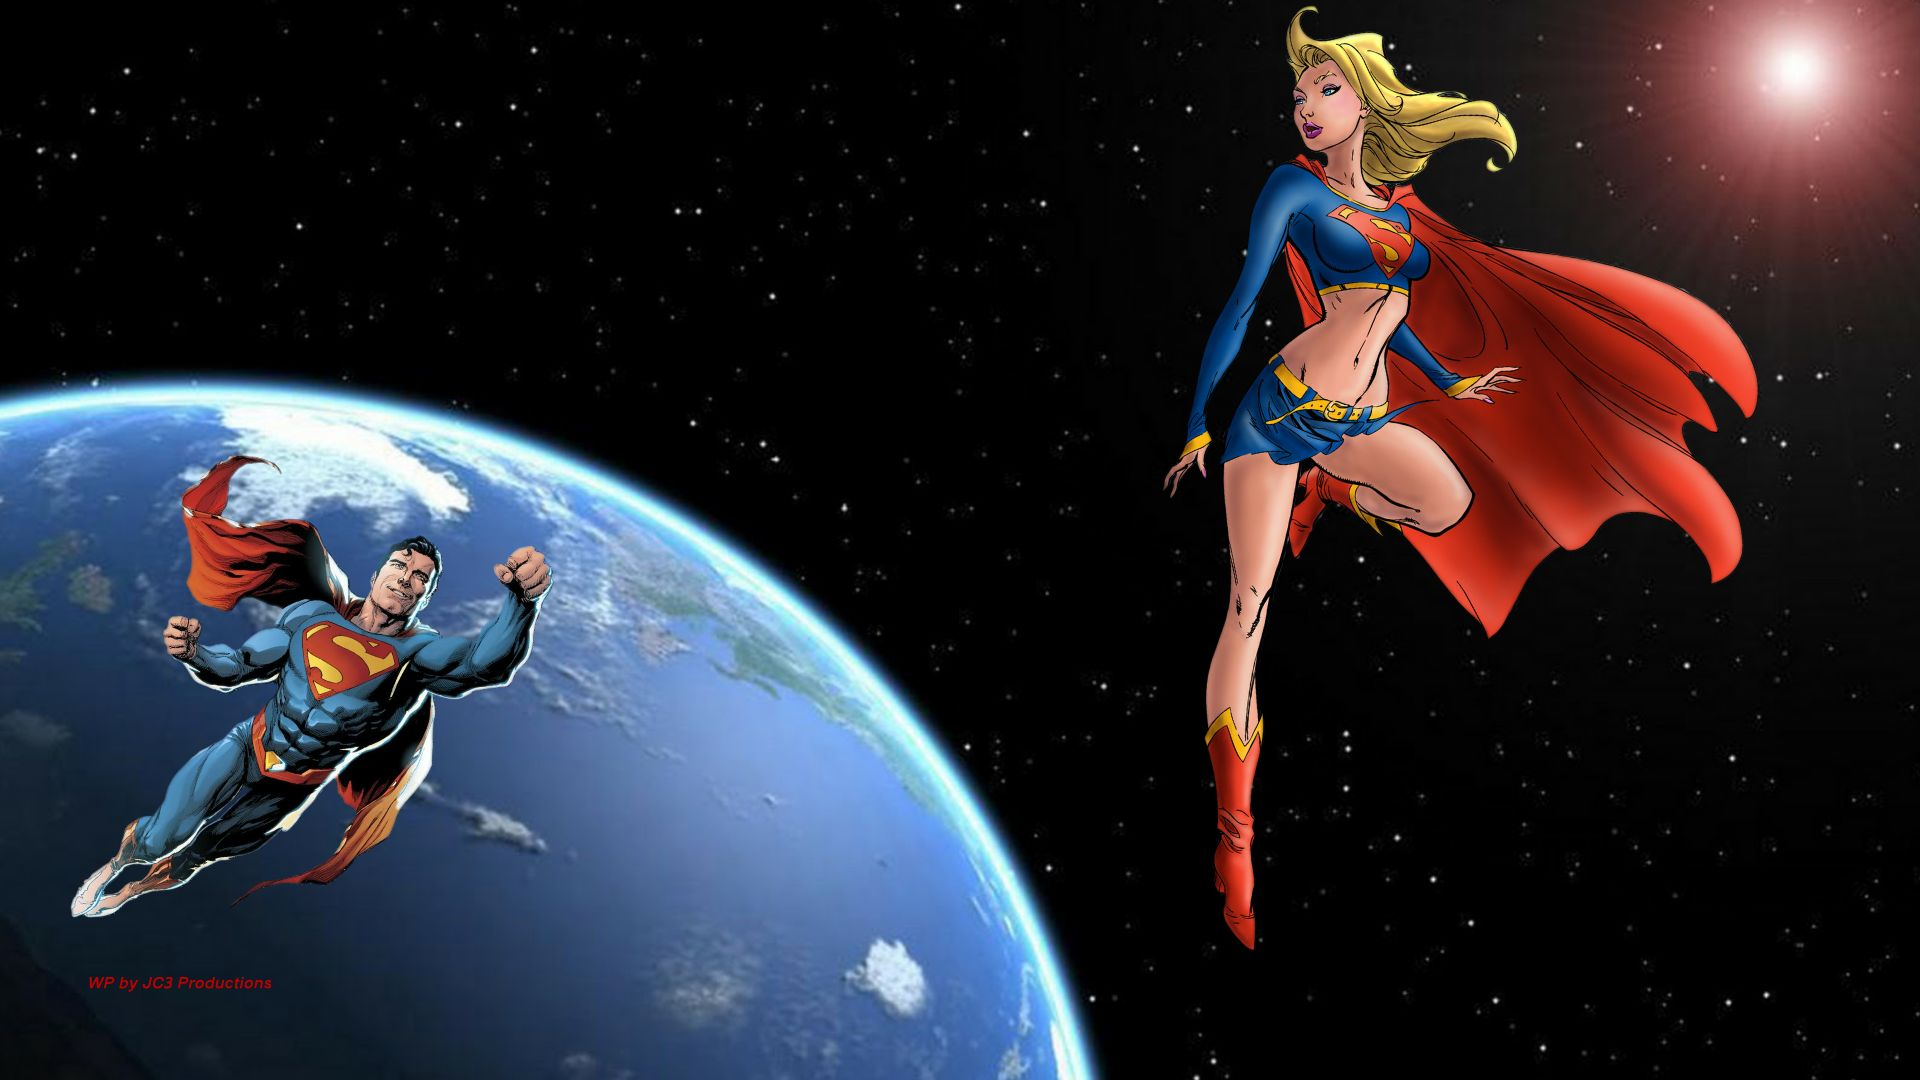 Supergirl Wallpaper - Superman In Space 2 by Curtdawg53